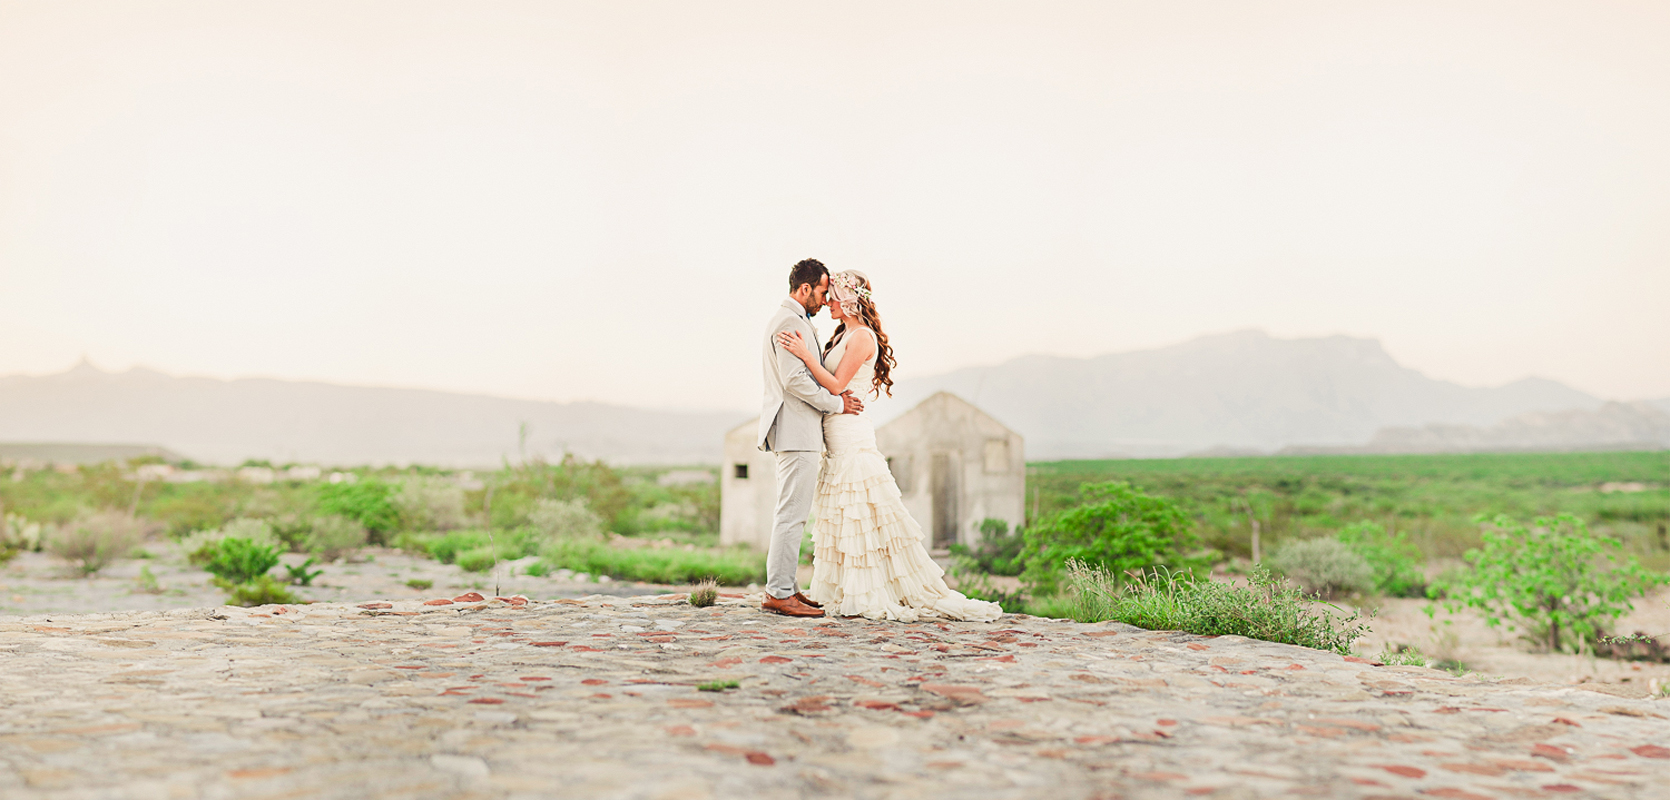 mexico-wedding-photographer-fotografo-de-bodas-wedding-destination-weddings-bodas-destino-006.JPG